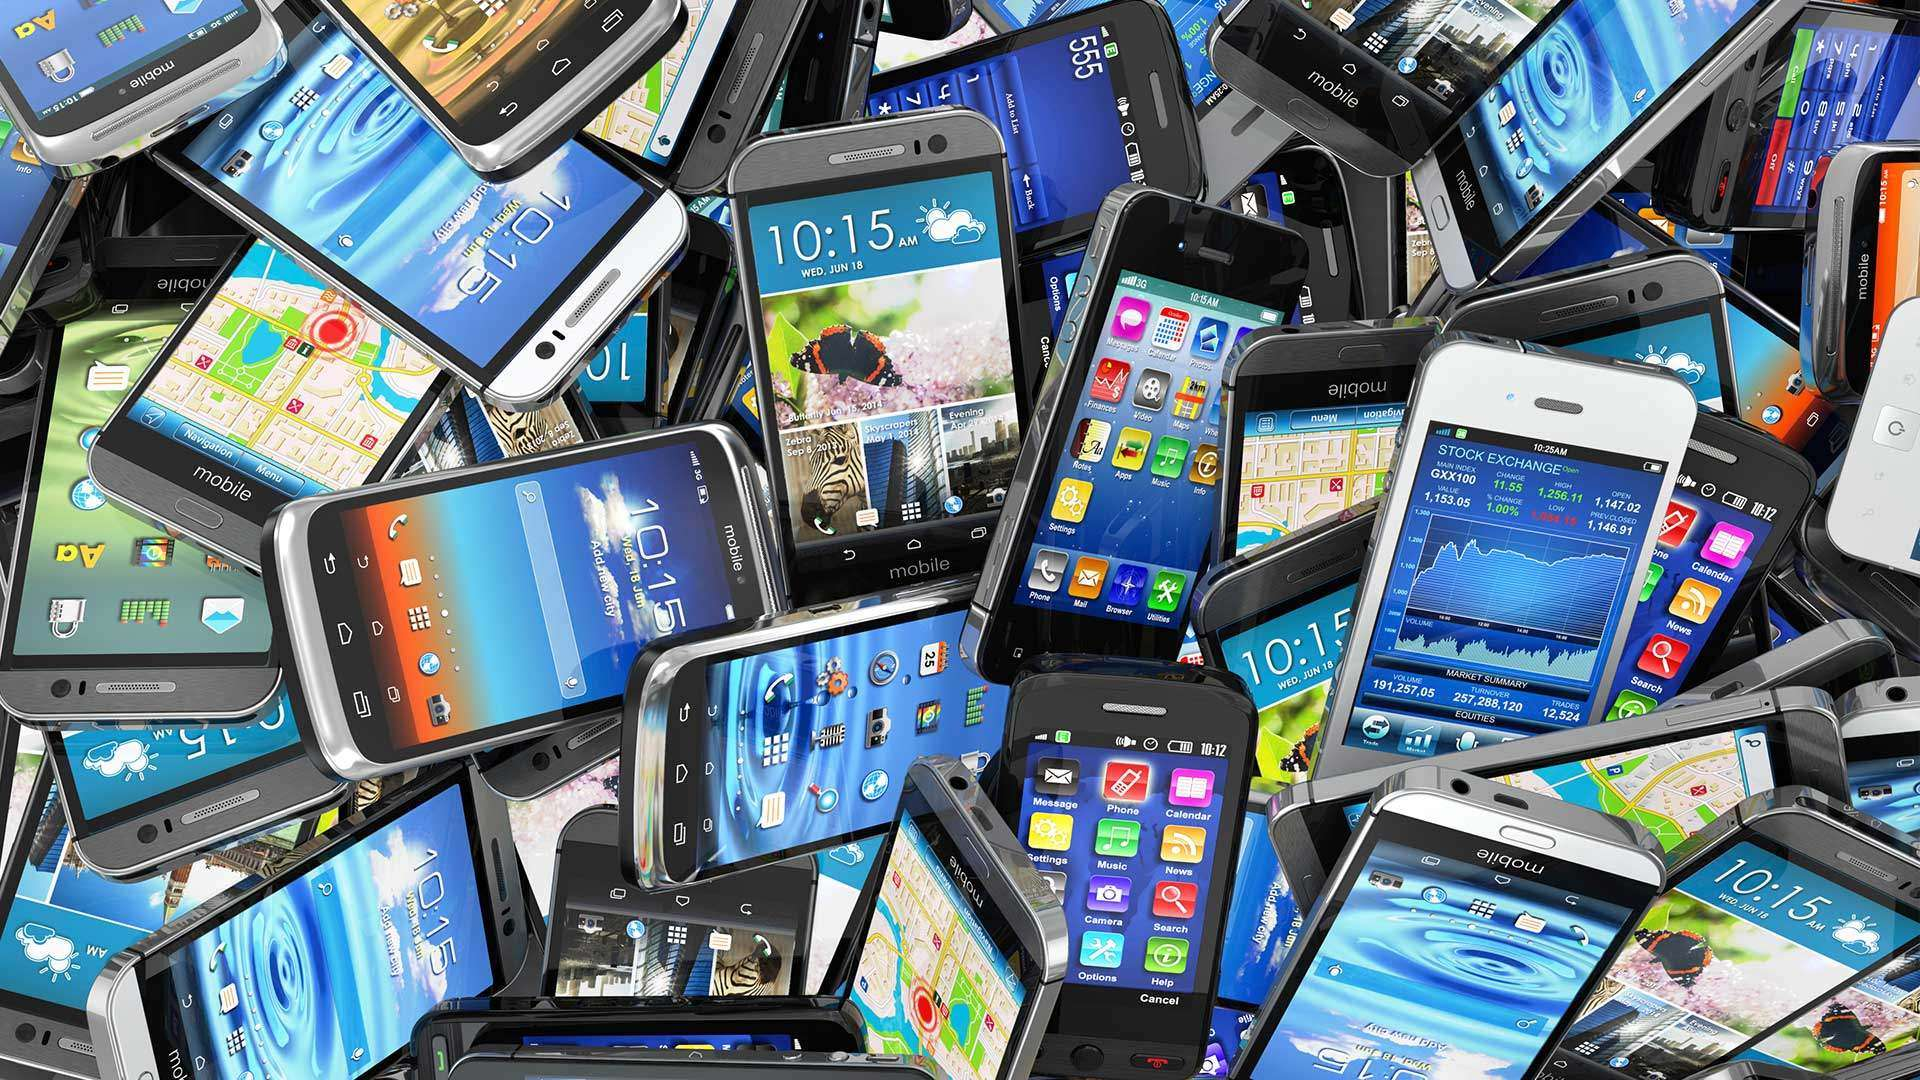 Mobile phone reuse and remanufacturing could be a viable alternative to recycleing